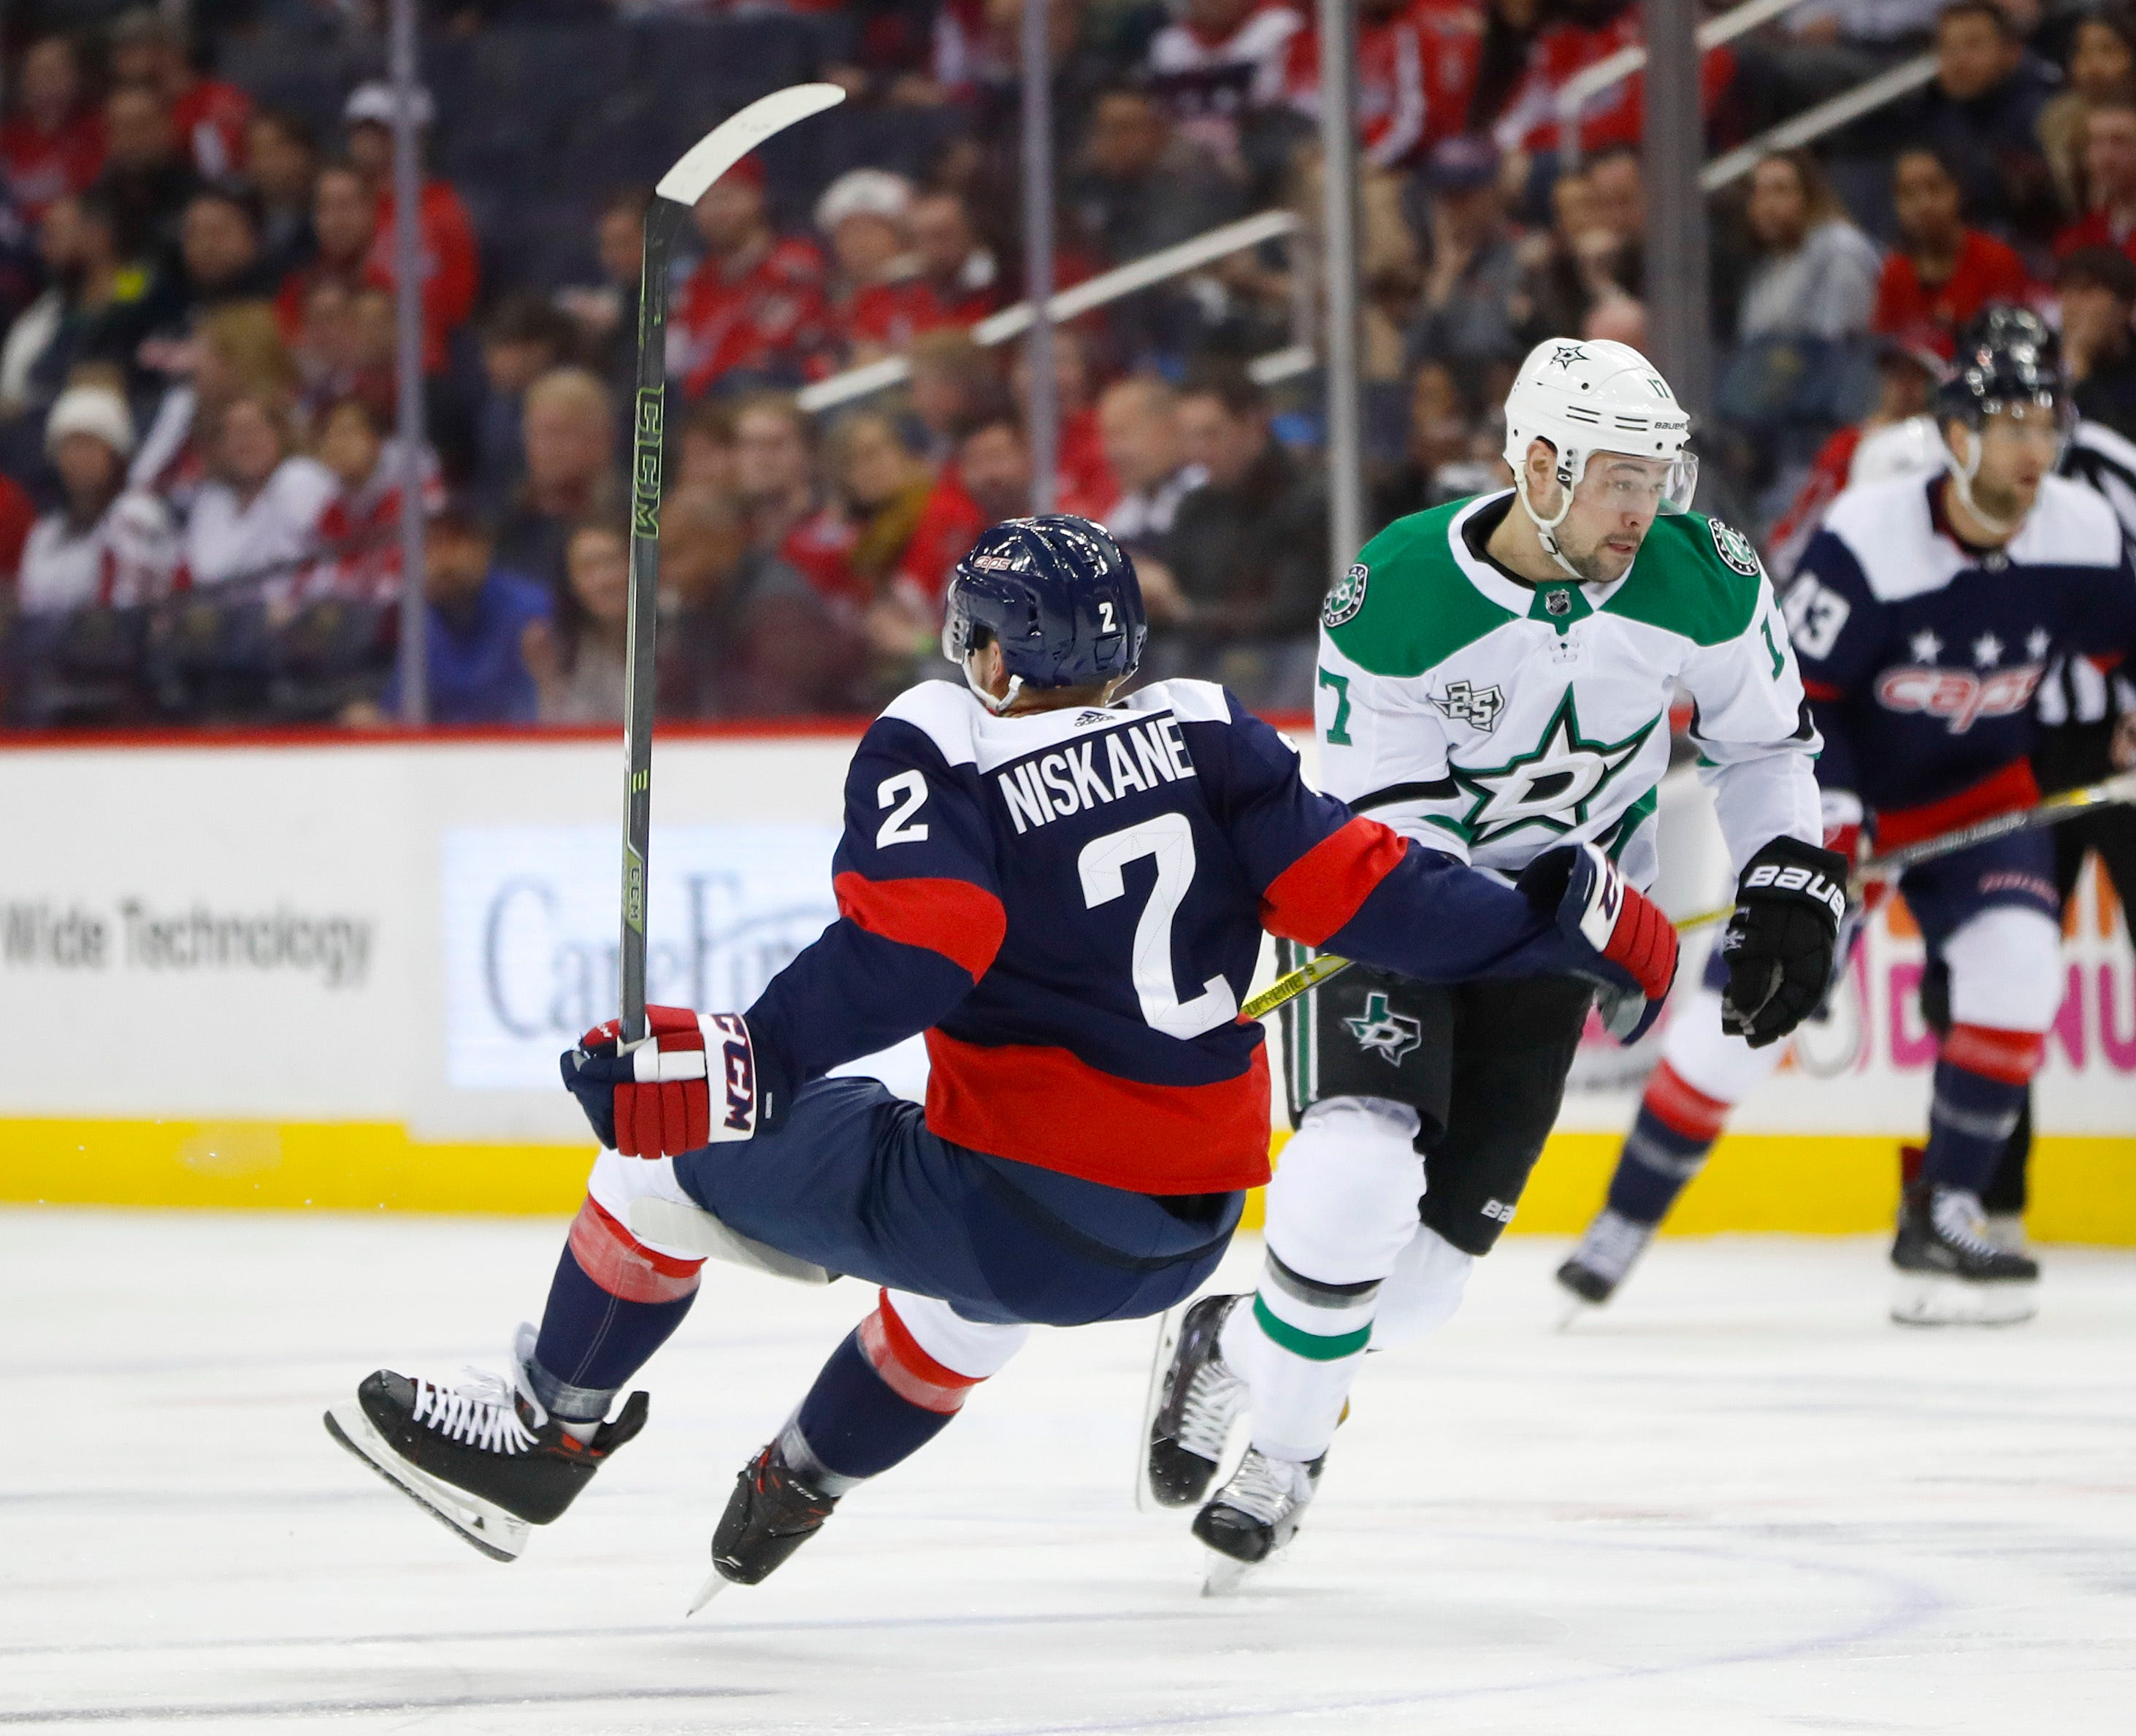 Carlson scores late as Capitals deal Stars a tough defeat